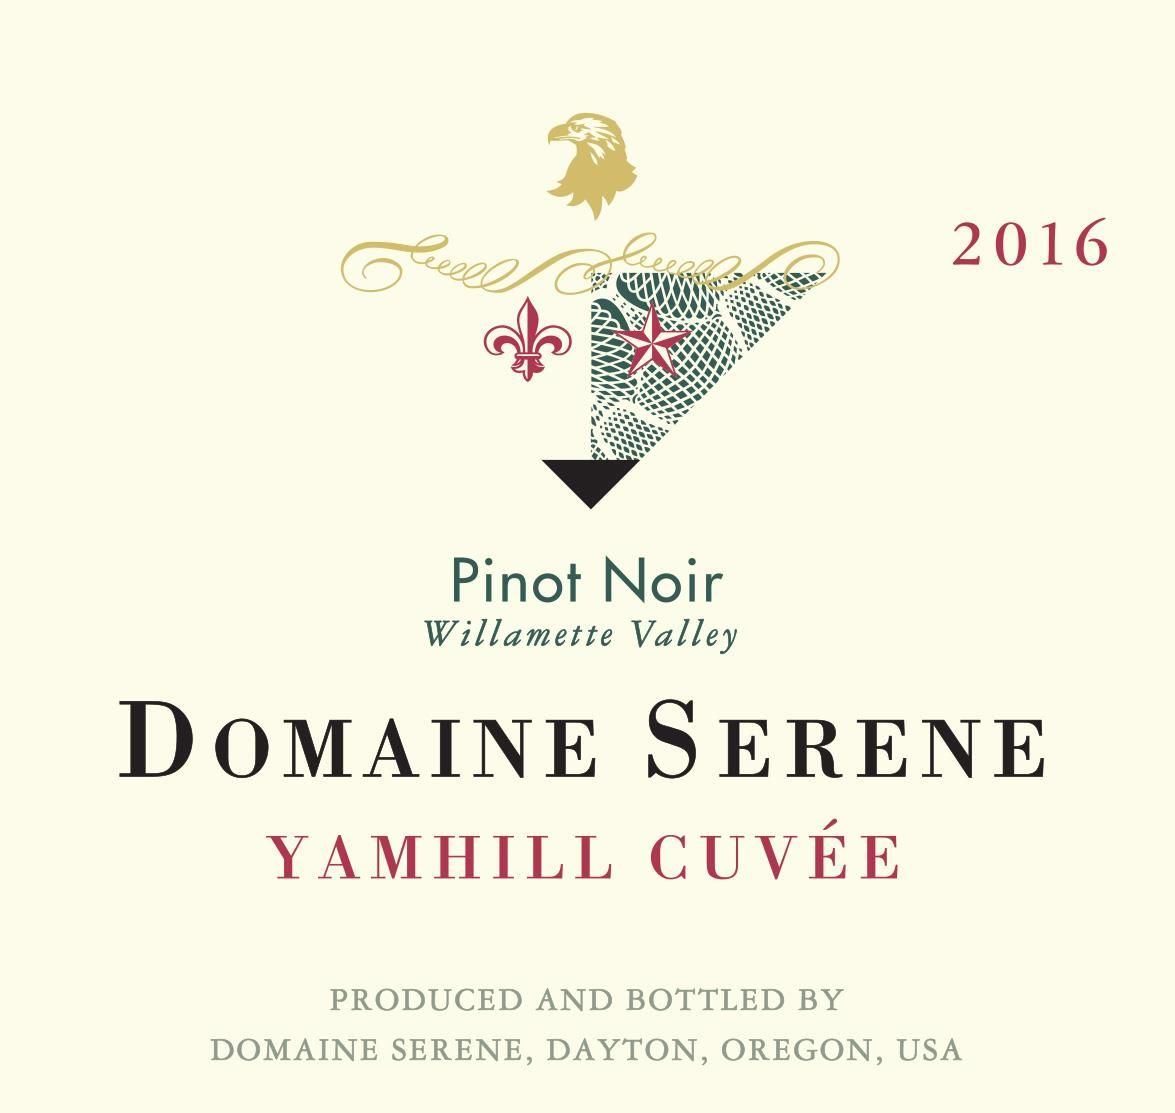 Domaine Serene Yamhill Cuvee Pinot Noir 2016 Front Label